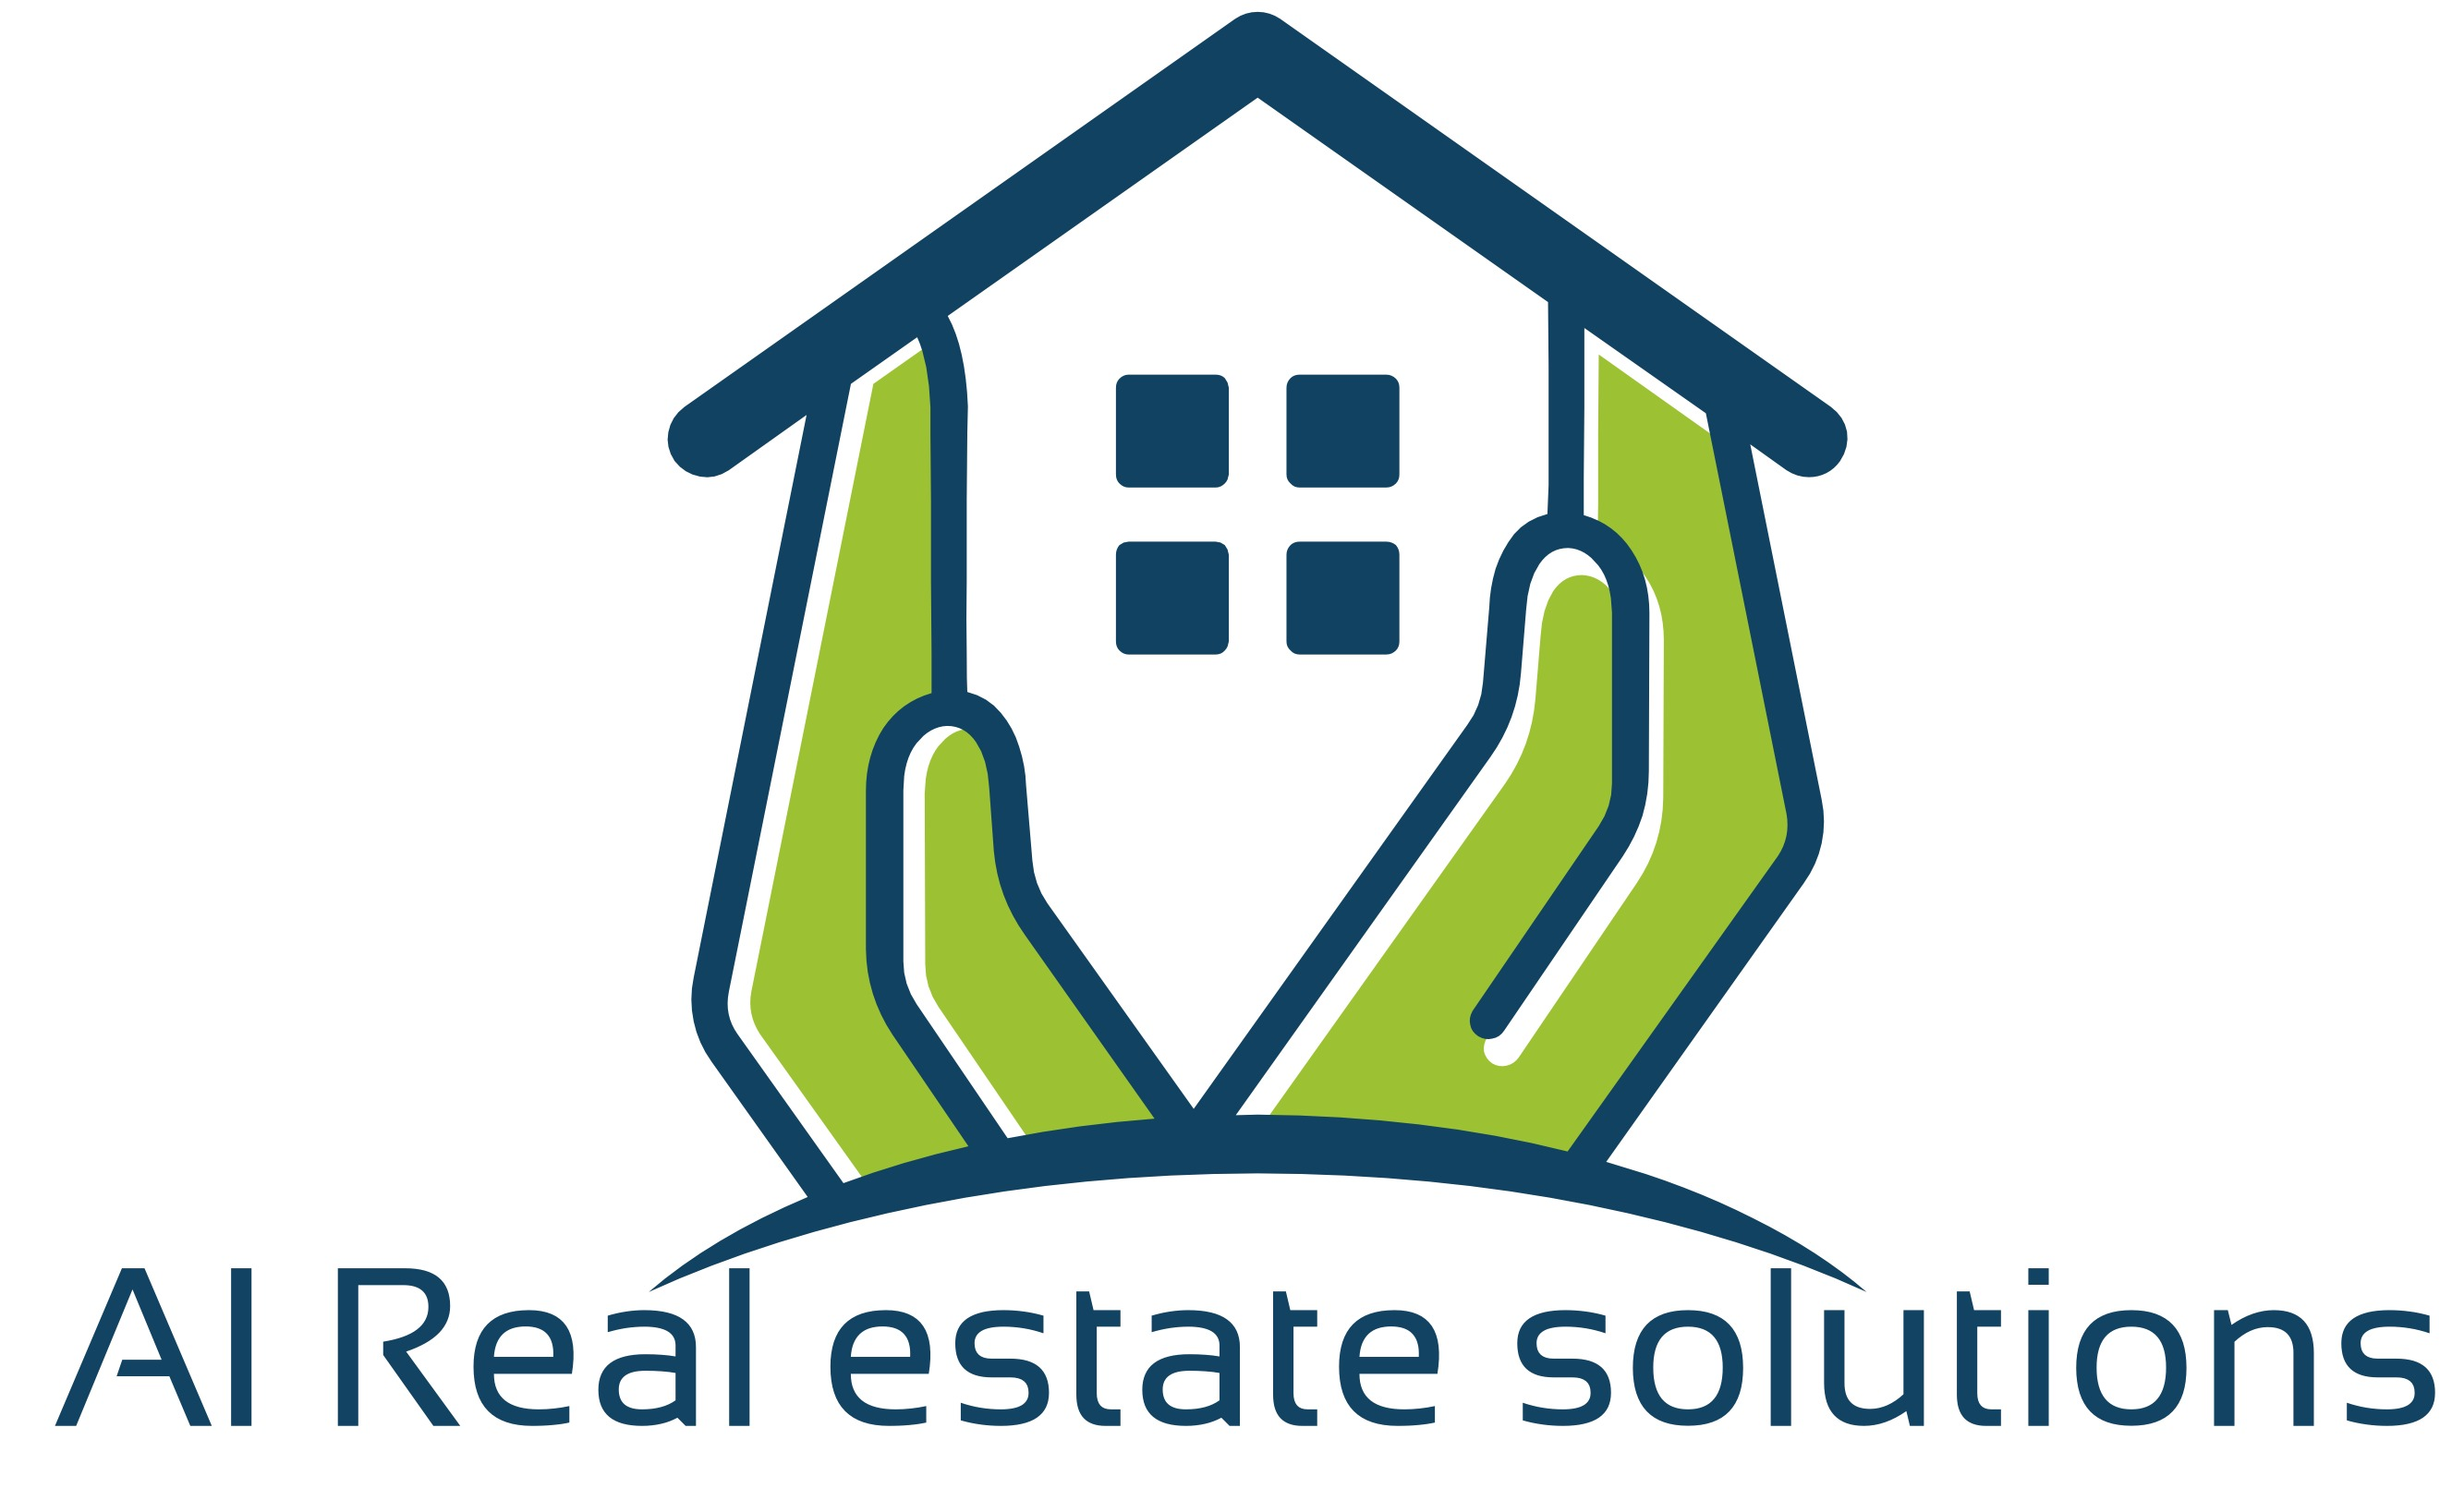 airealestatesolutions